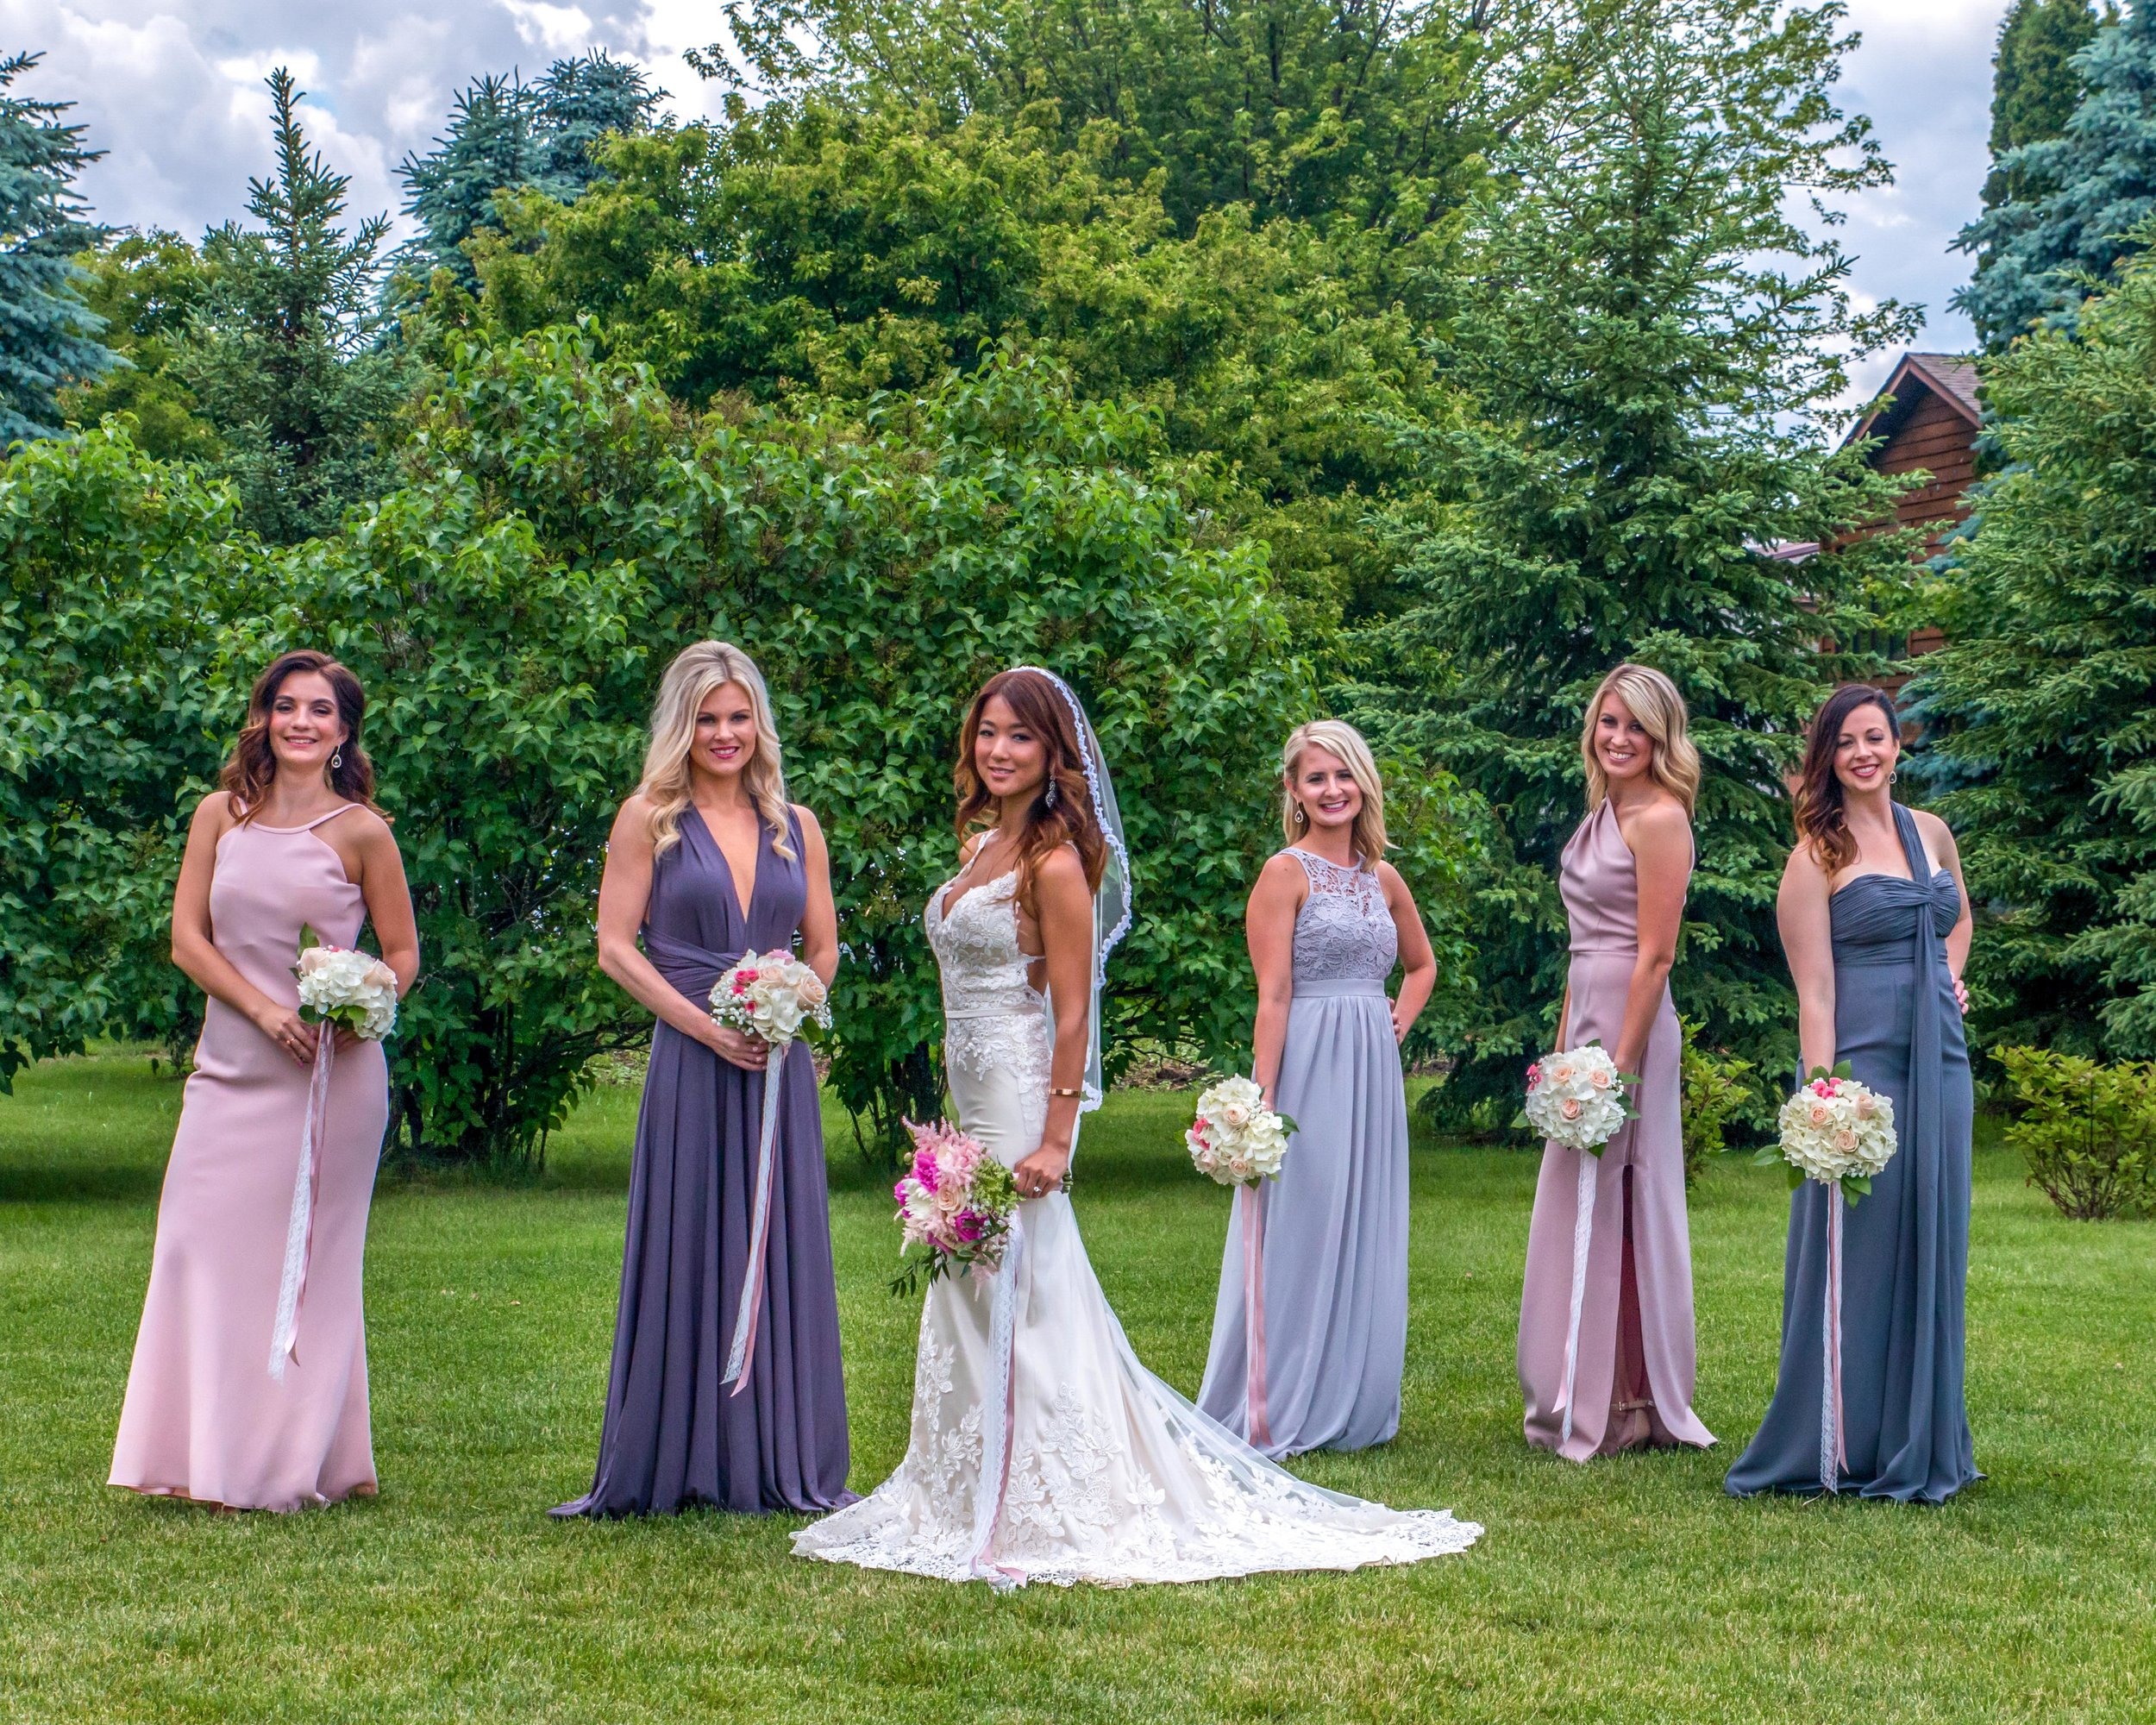 Minnesota Wedding at Glenhaven, outdoor ceremony, Fab Weddings, mismatched bridesmaids